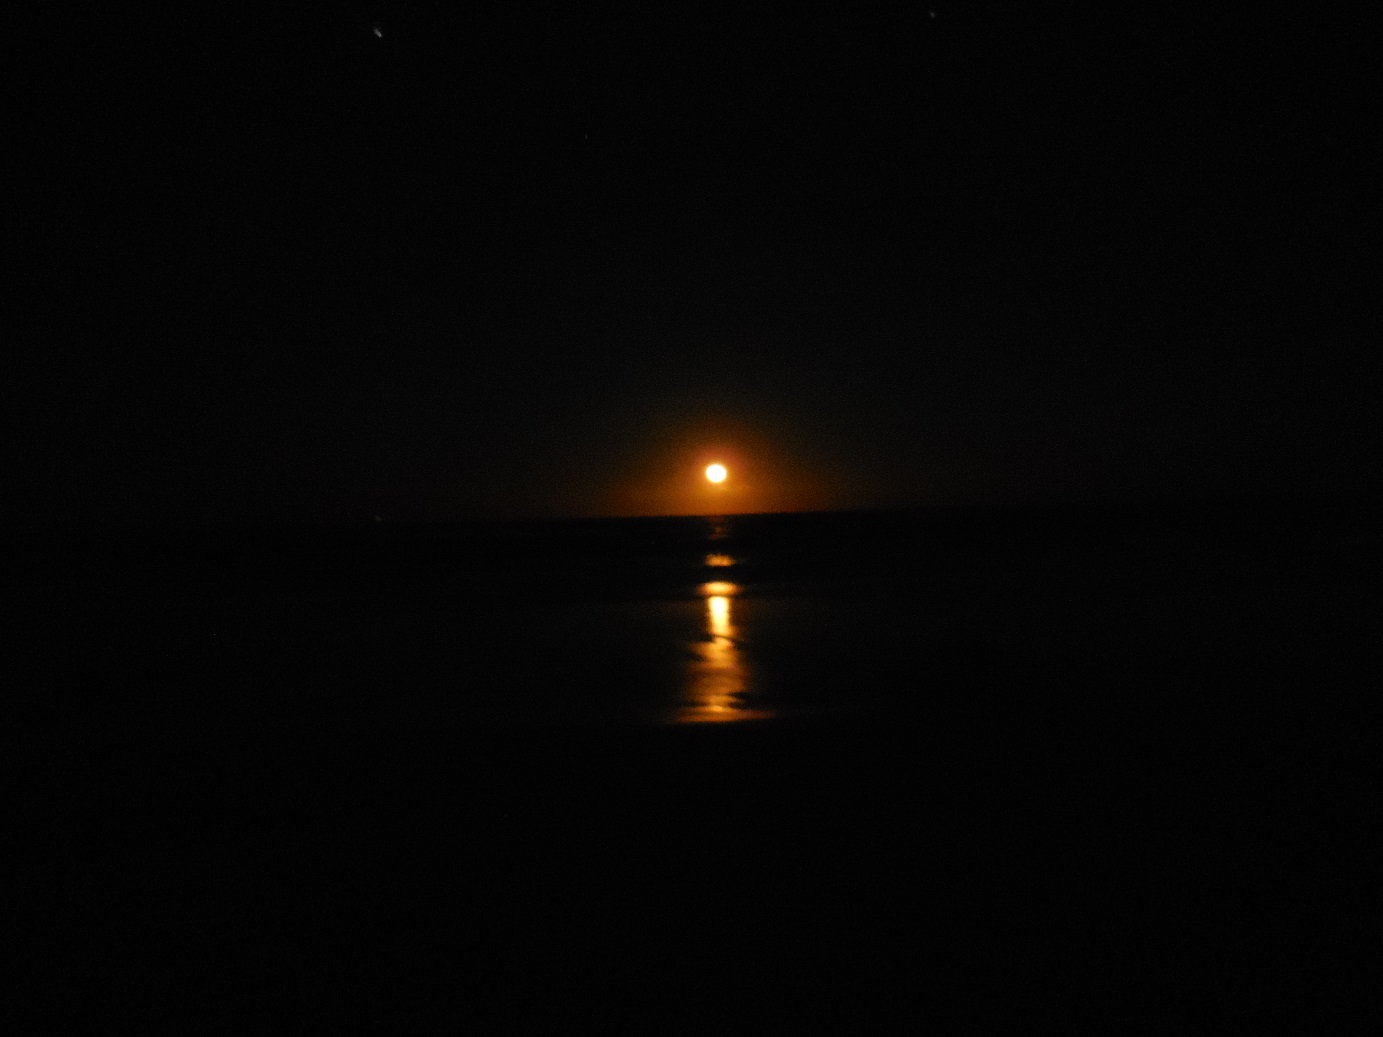 yes it is the moon in gnarly orange!